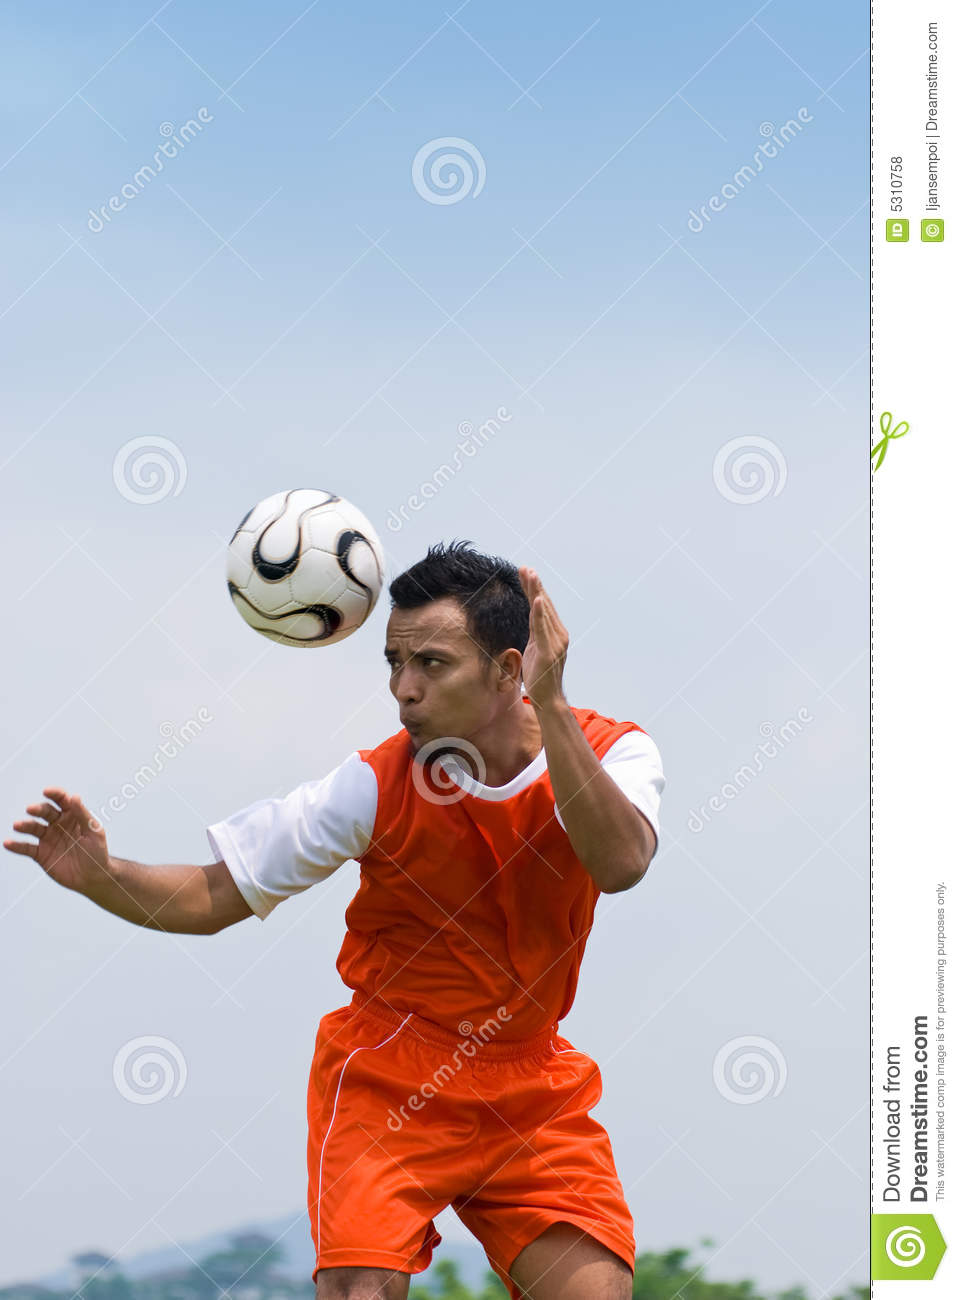 Download Calcio fotografia stock. Immagine di obiettivo, football - 5310758